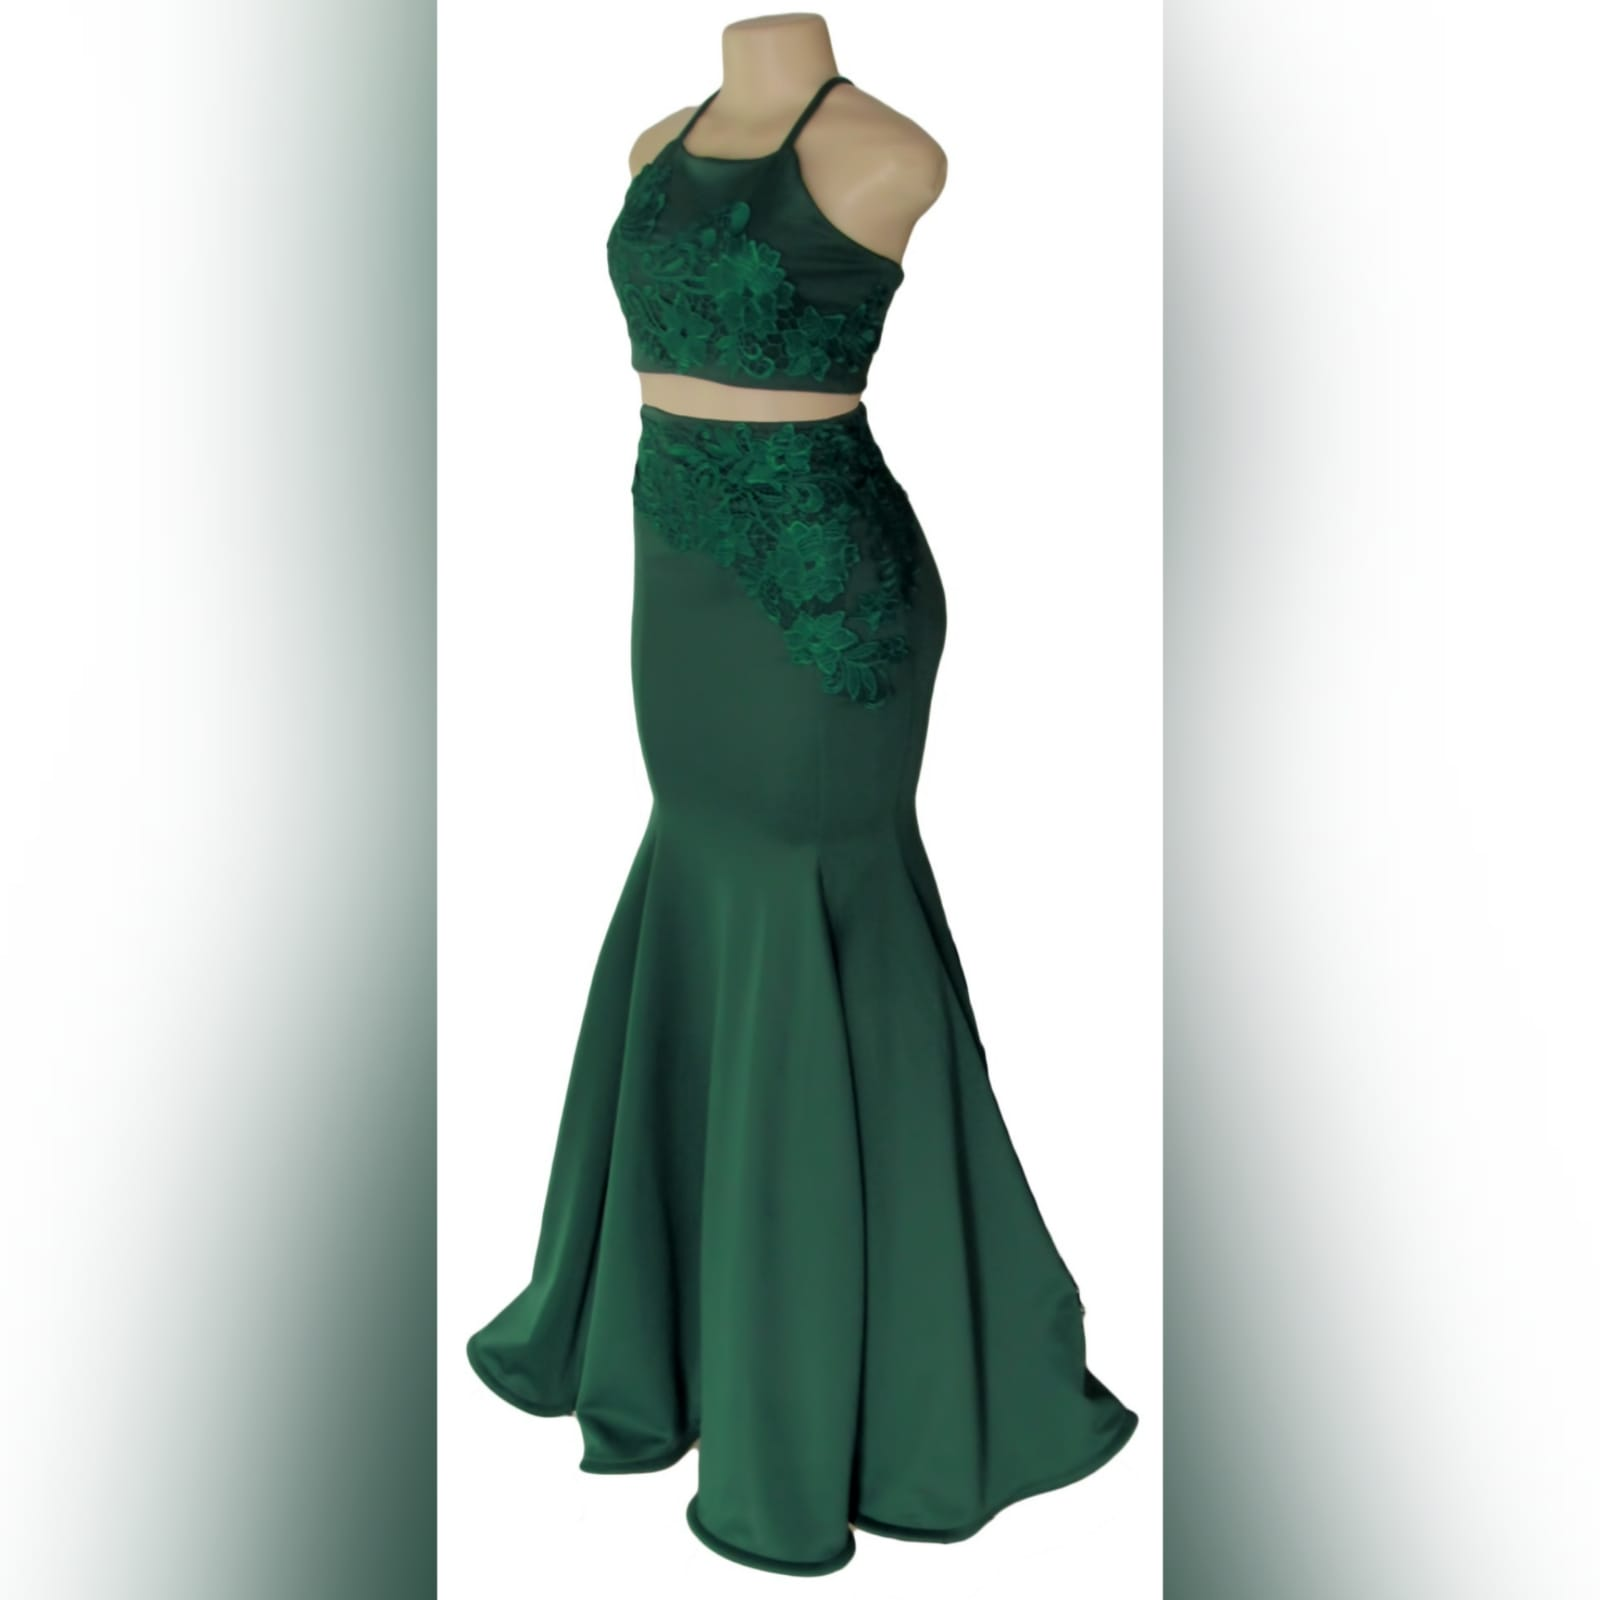 2 piece emerald green mermaid prom dress 8 2 piece emerald green mermaid prom dress. A gorgeous crop top with a lace-up open back, with a mermaid skirt. Lace detail on skirt and top for a classic touch.